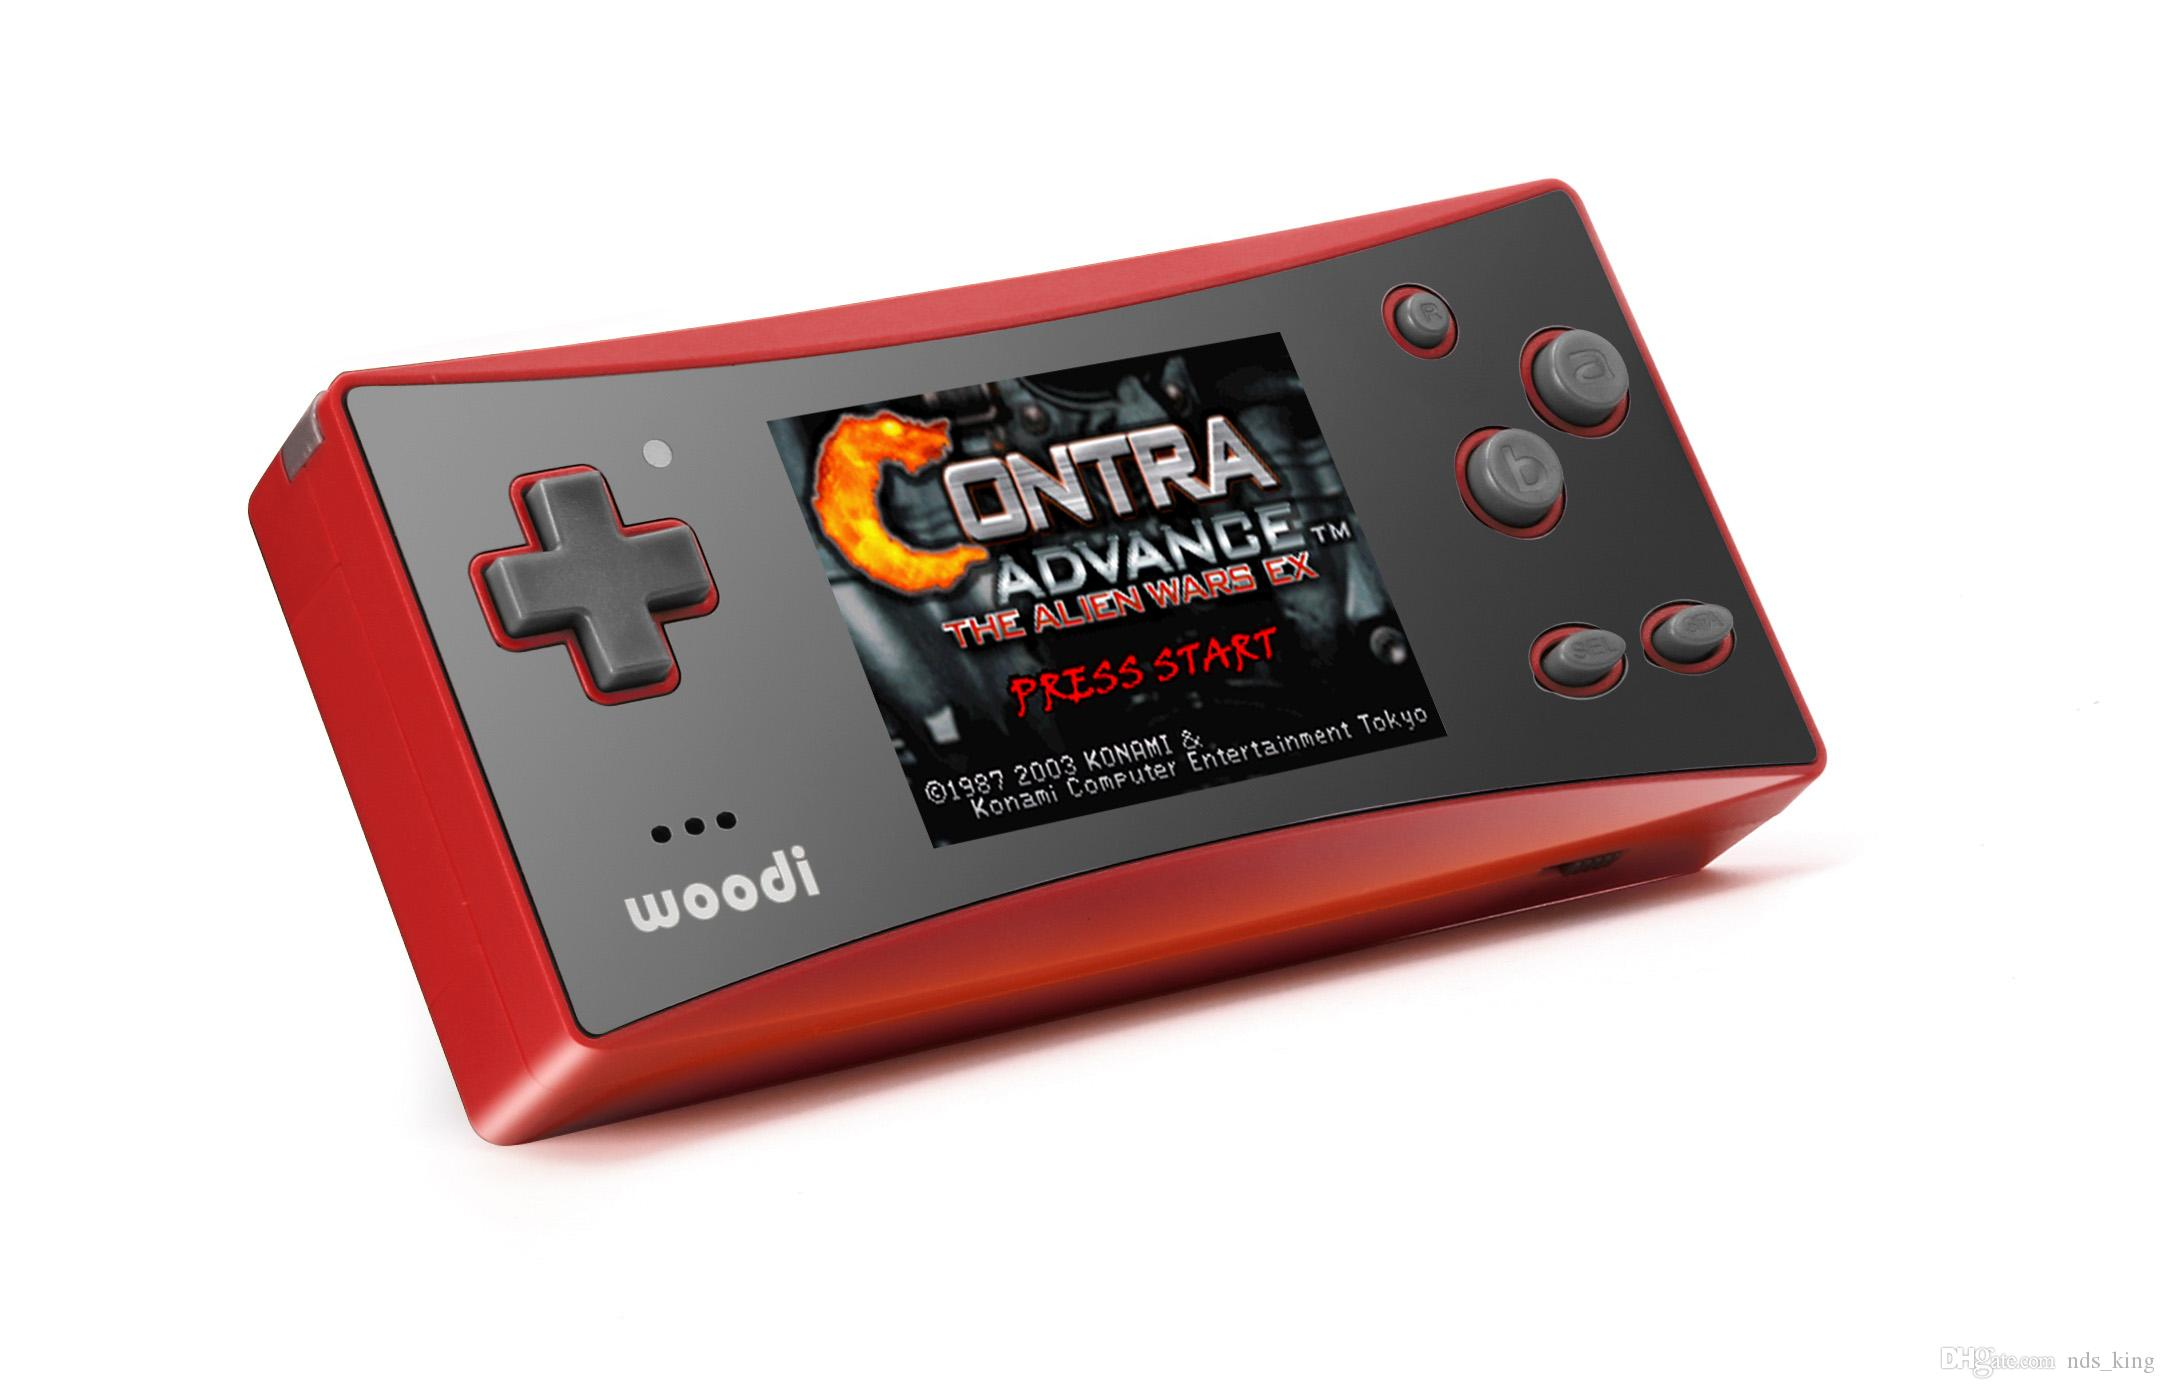 Game boy color online free - Highlighting The Backlight Game Console Hot Sale Free Ship Build In Games For Gba Games Red Color Game Console Online With 28 56 Piece On Nds_king S Store